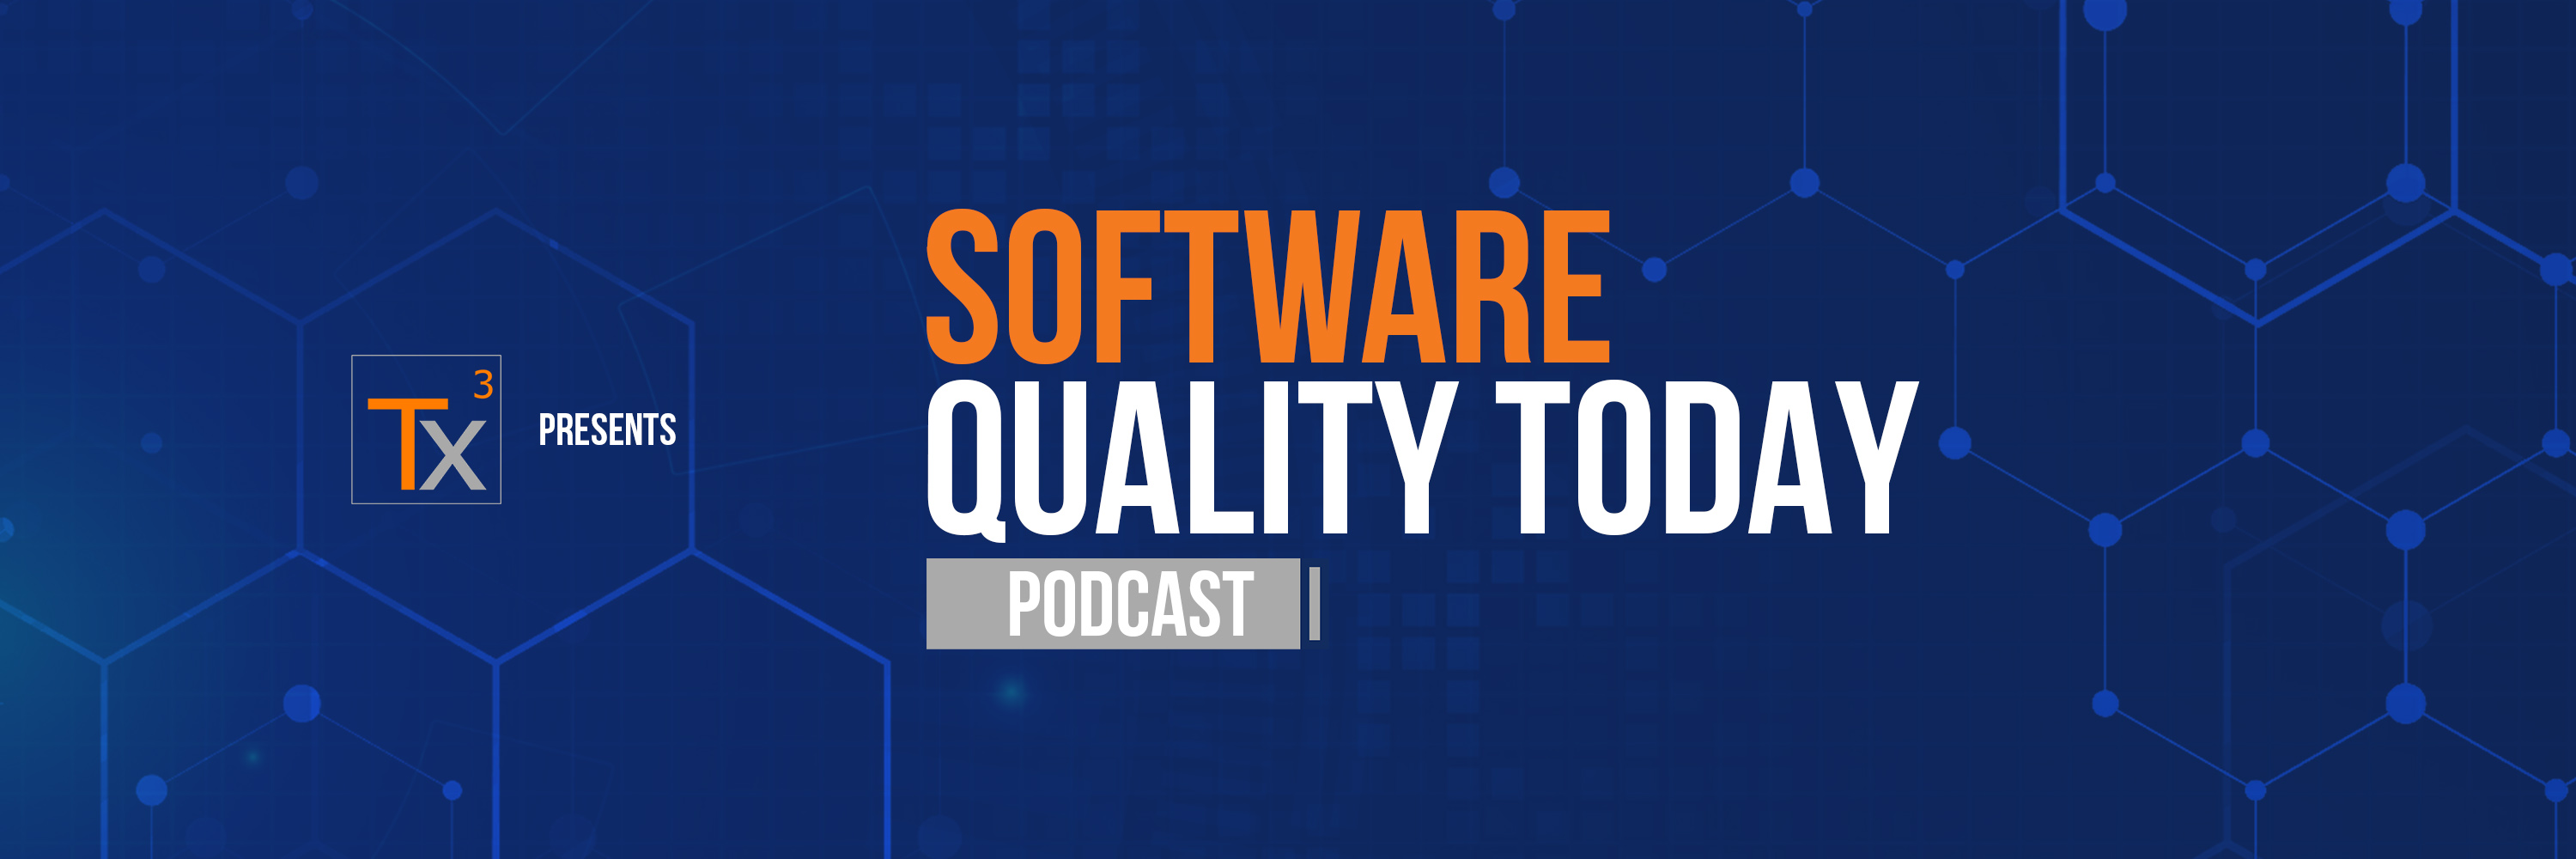 Software Quality Today Twitter Cover